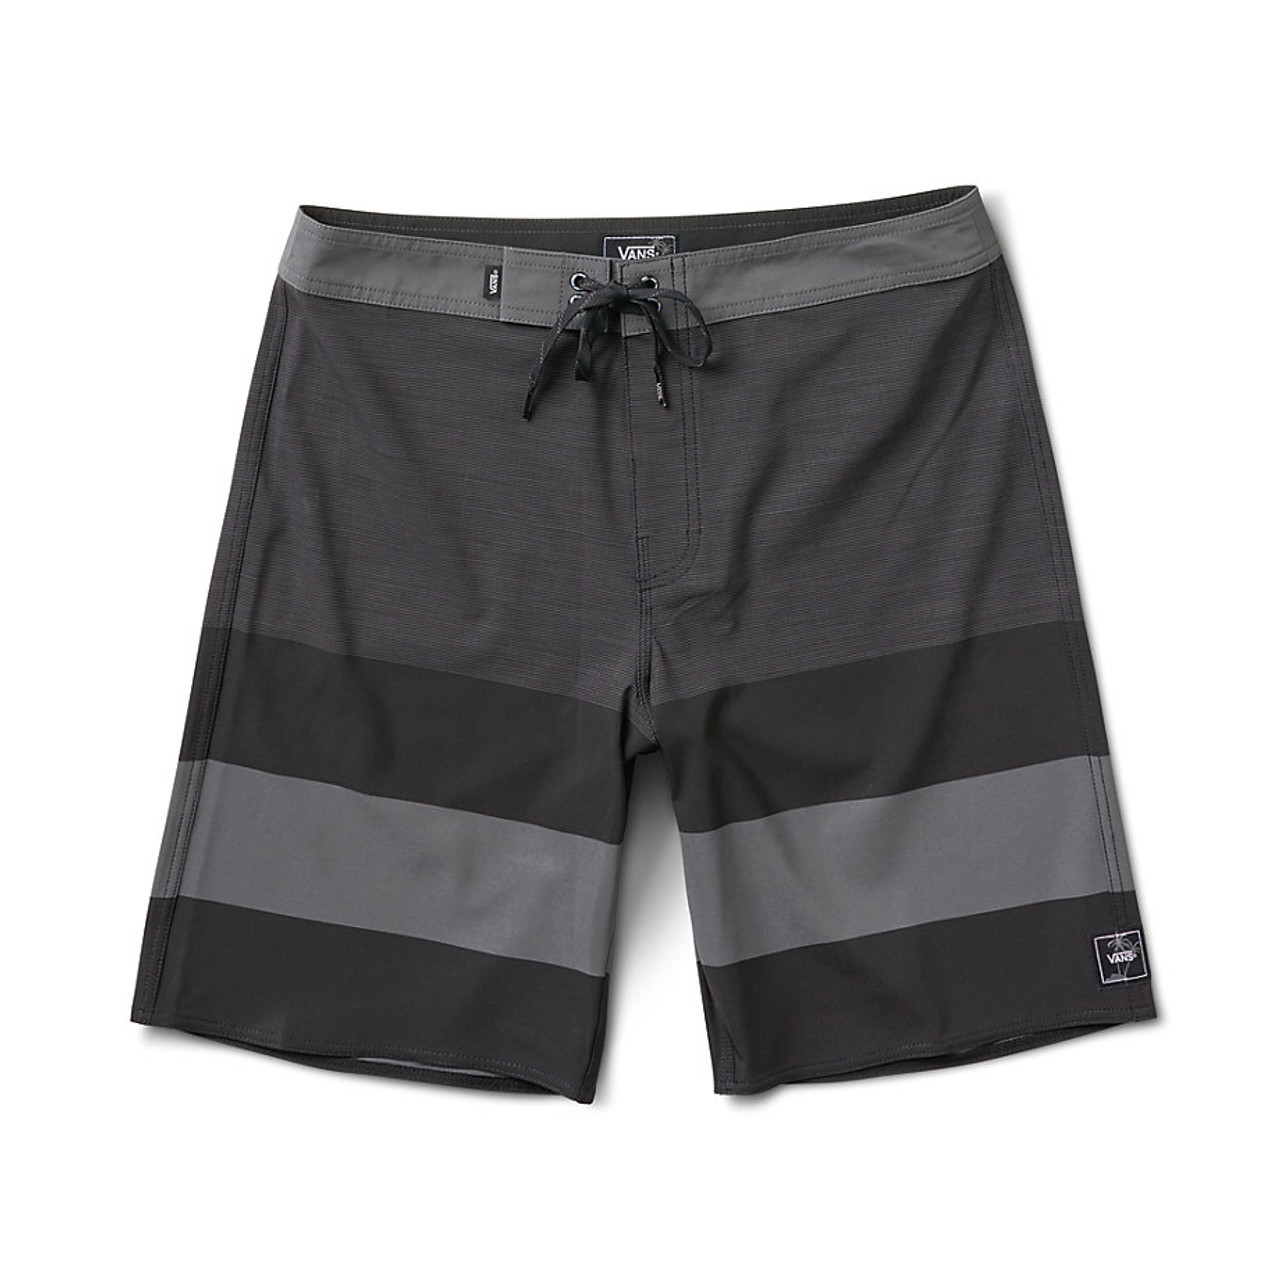 f263fcdeff53a Vans Boardshorts - Era Boardshort 20 - Black Micro Stripe - Surf and Dirt